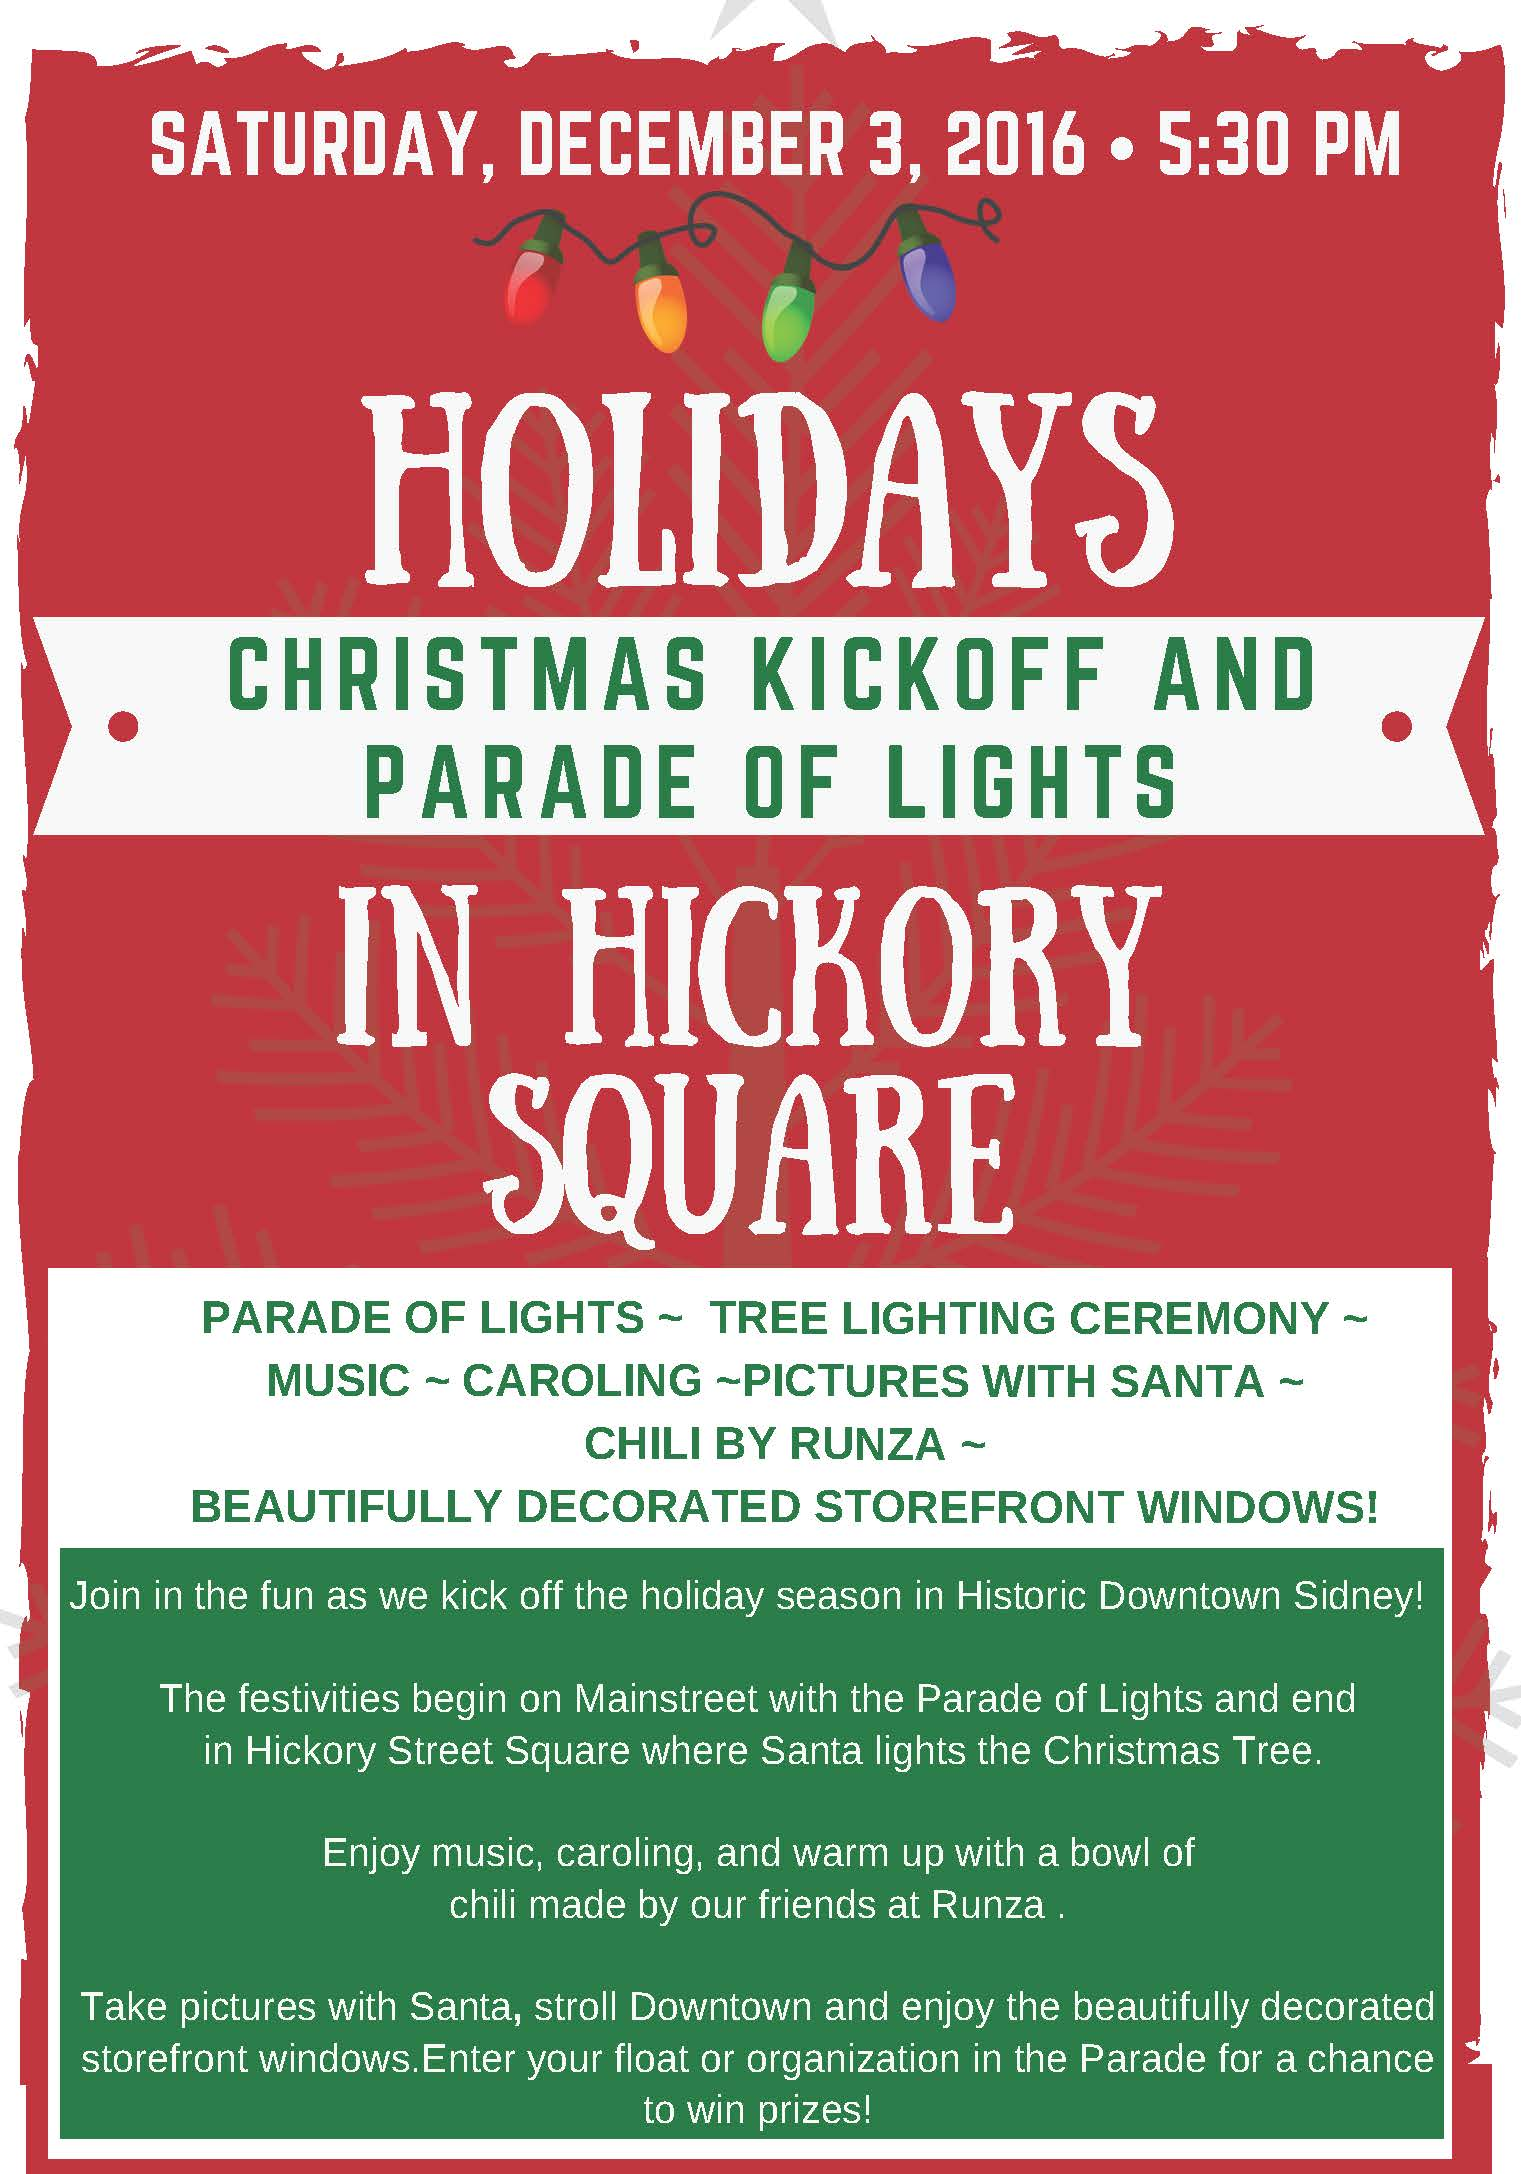 Parade of Lights Entry Form